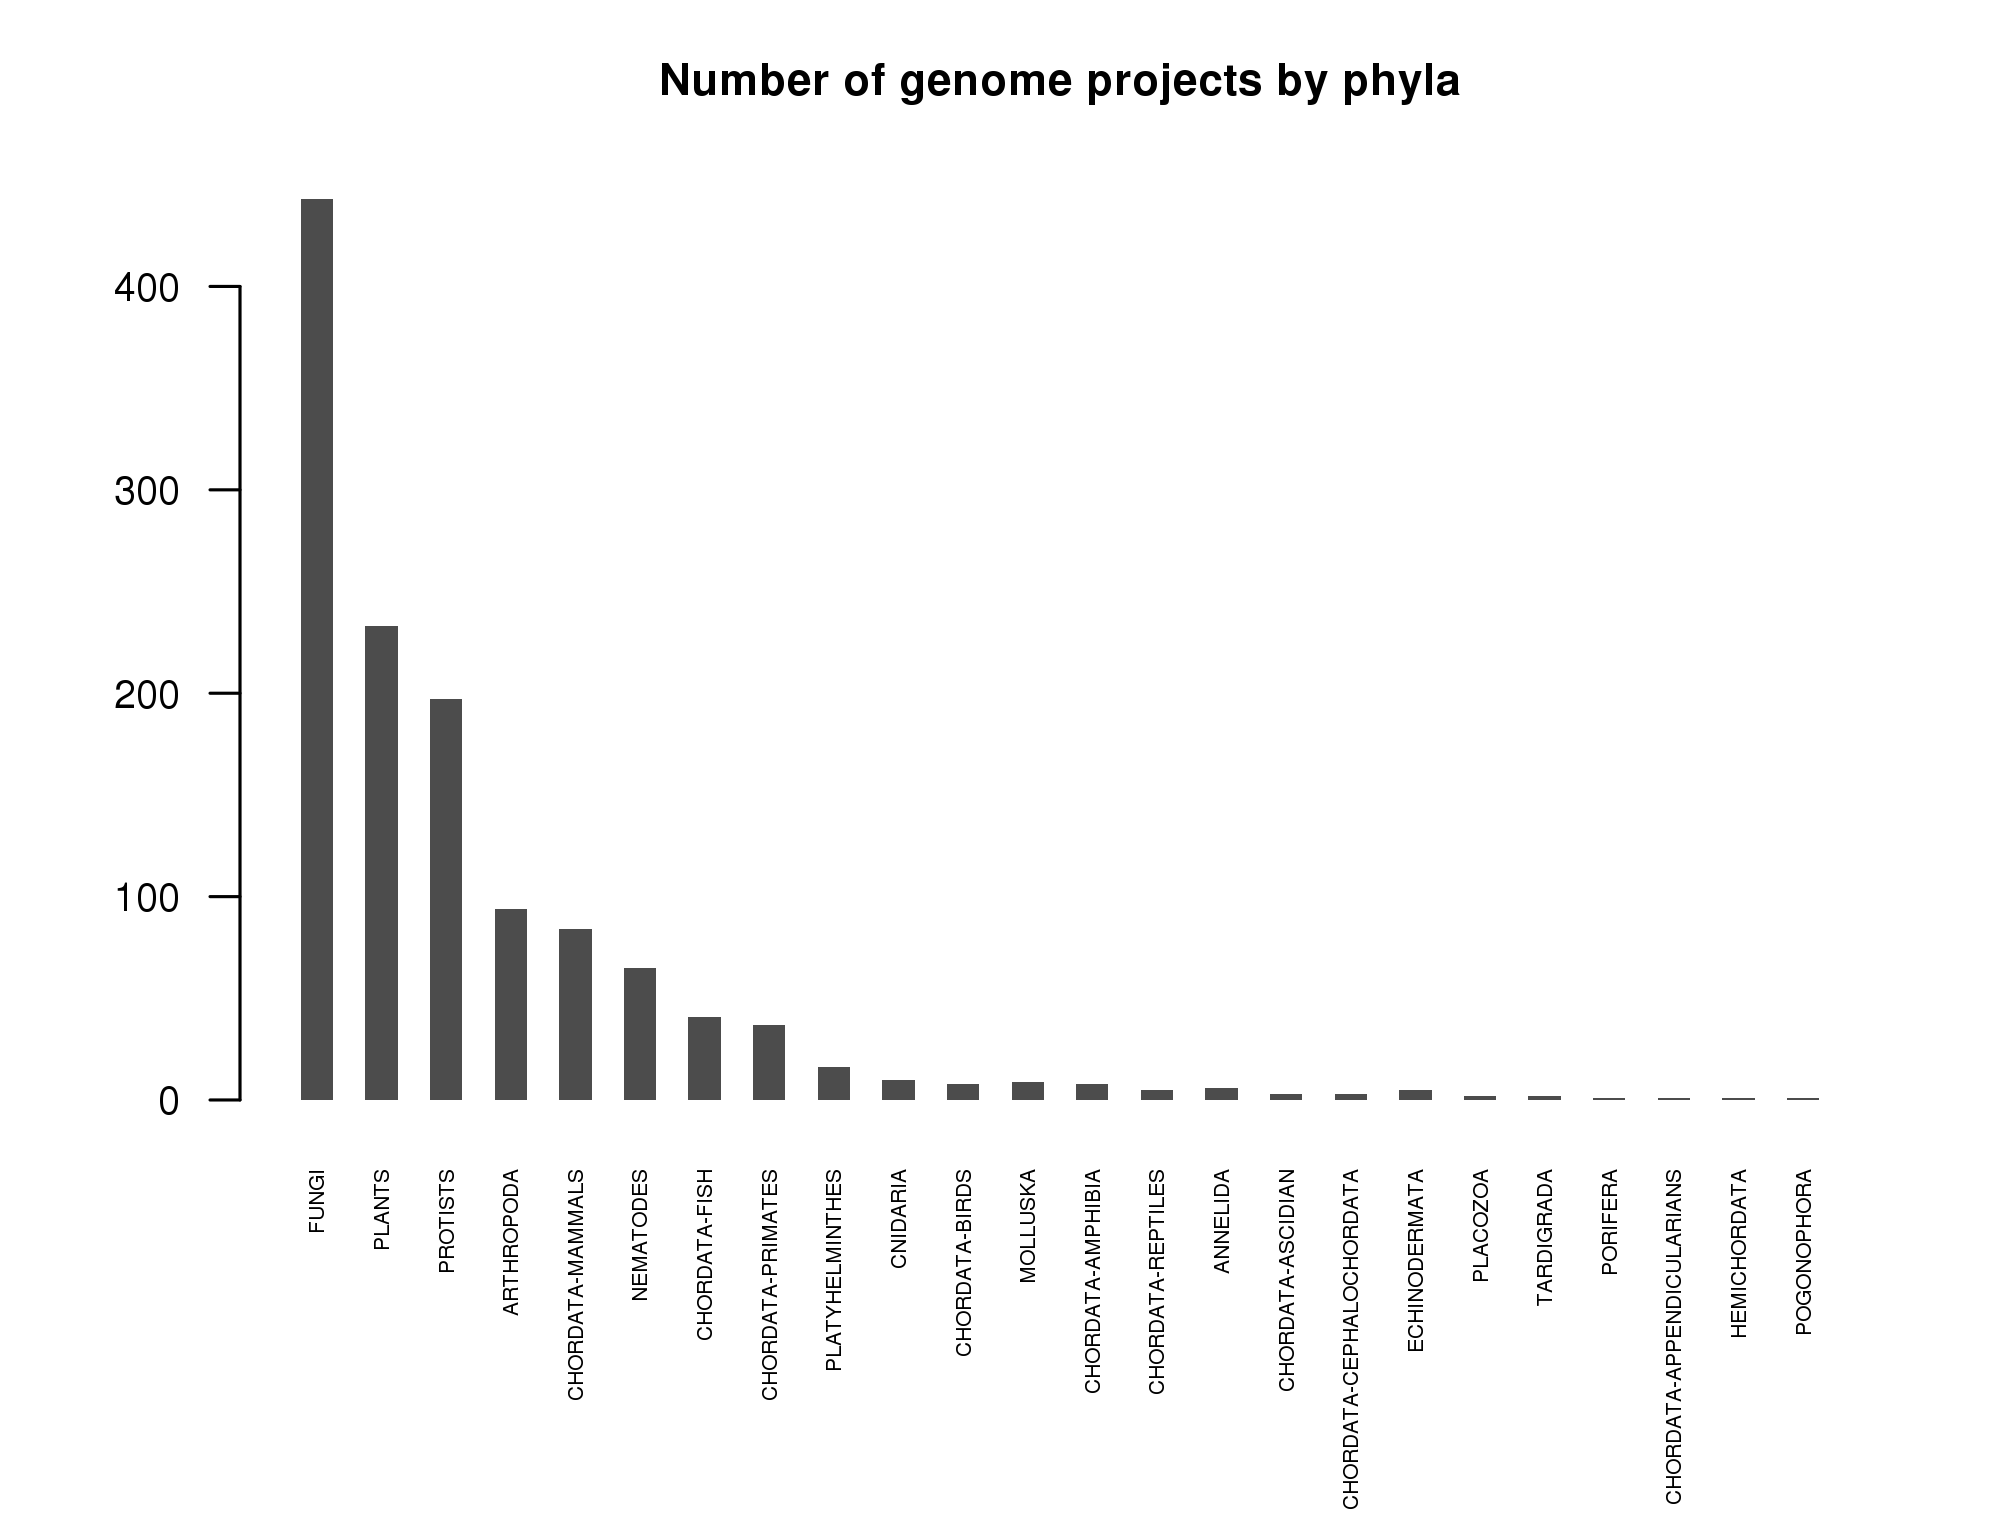 Number of projects per phylogenetic group as of September 2009.